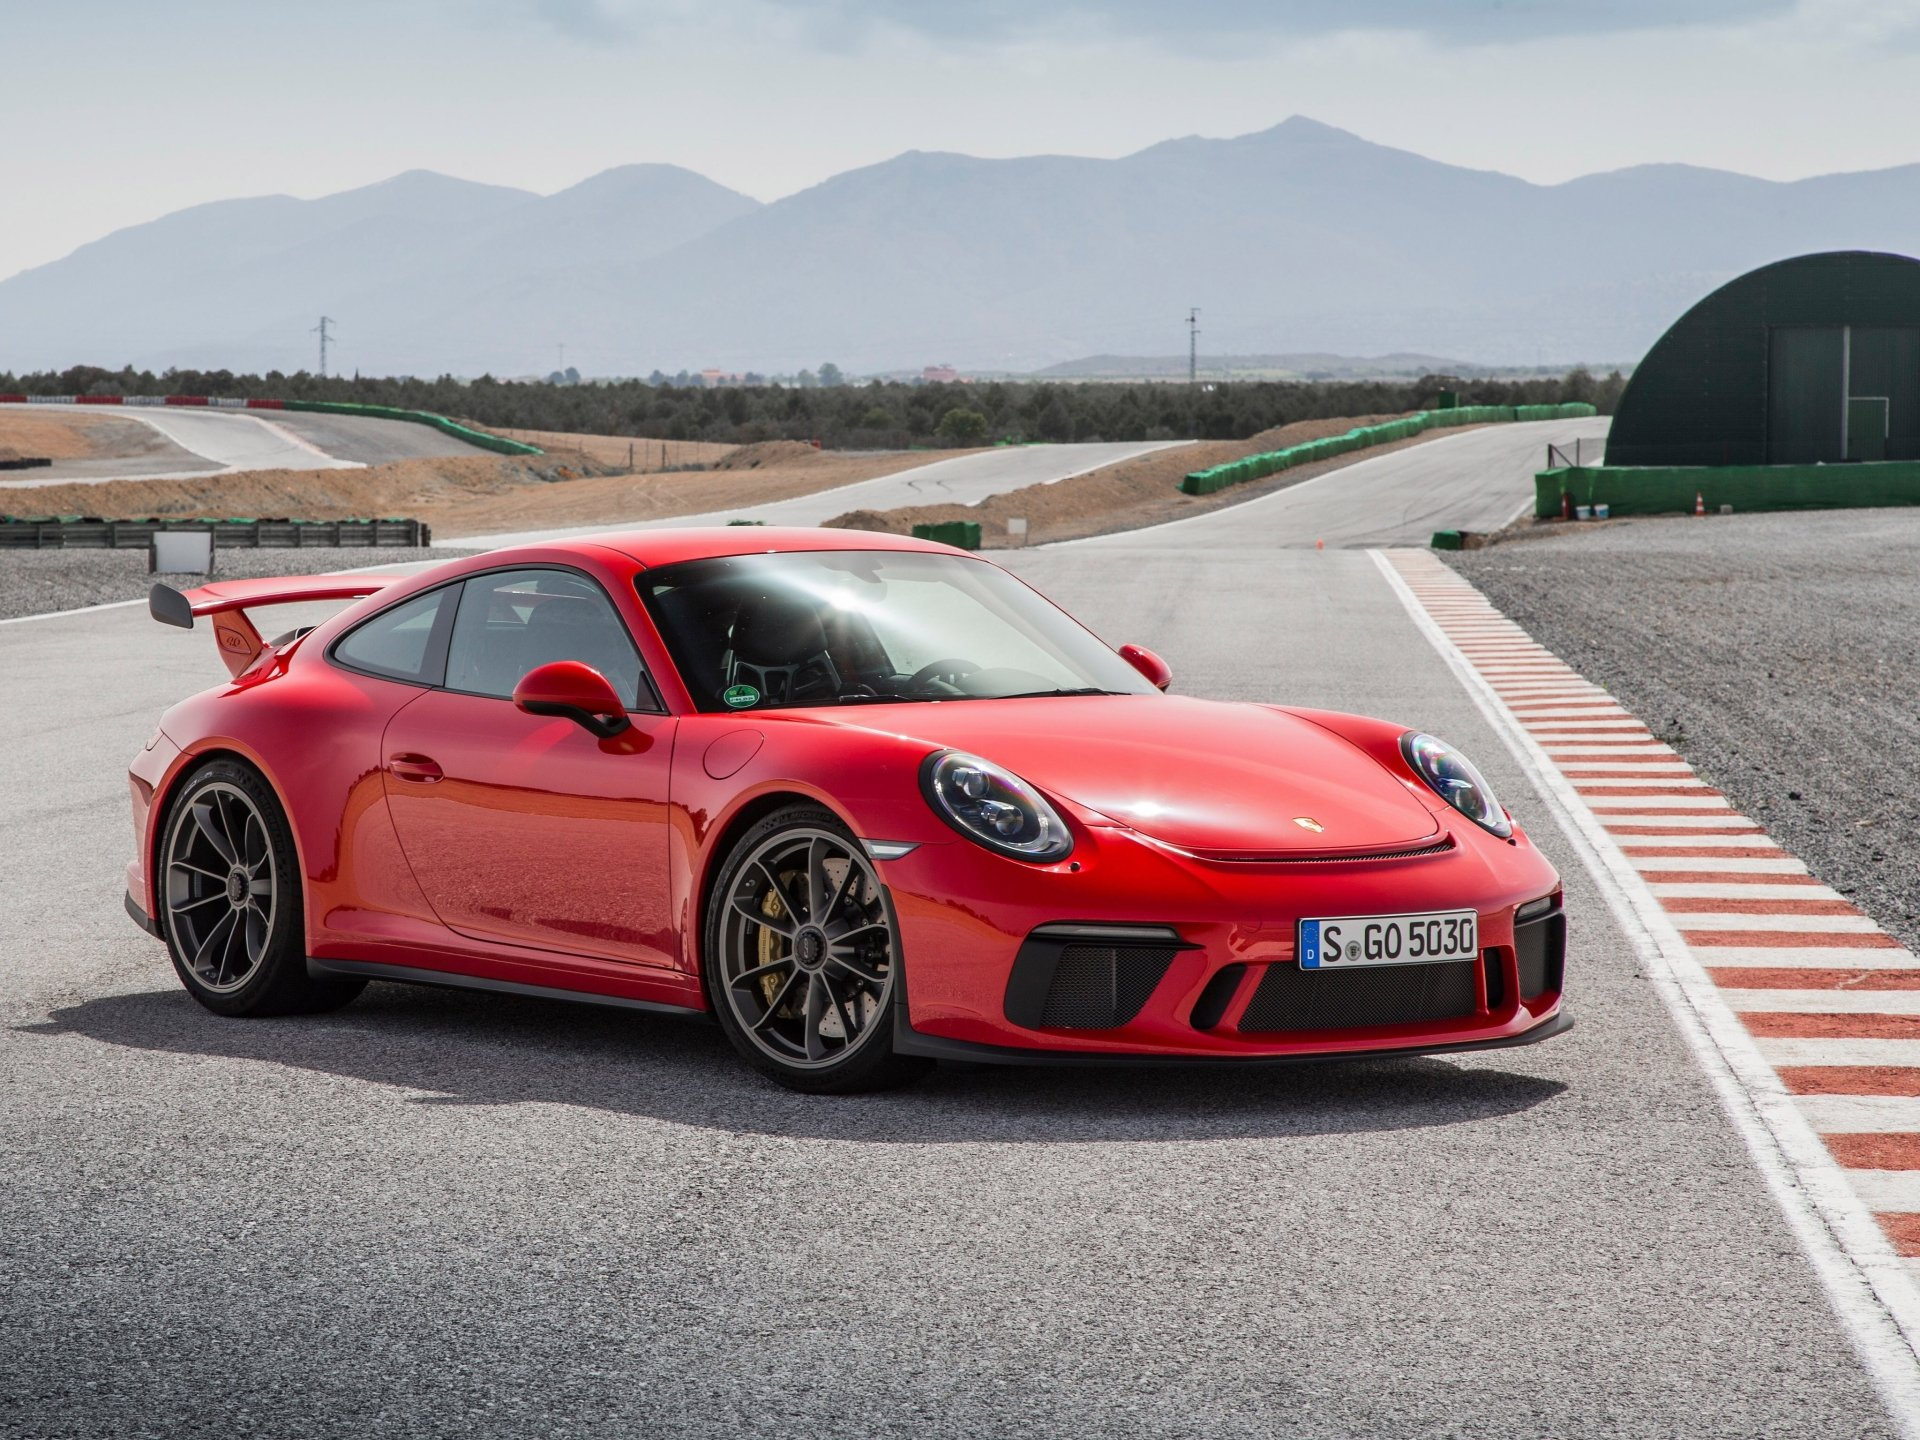 Vehicles - Porsche 911 GT3  Porsche 911 Porsche Car Vehicle Red Car Sport Car Wallpaper